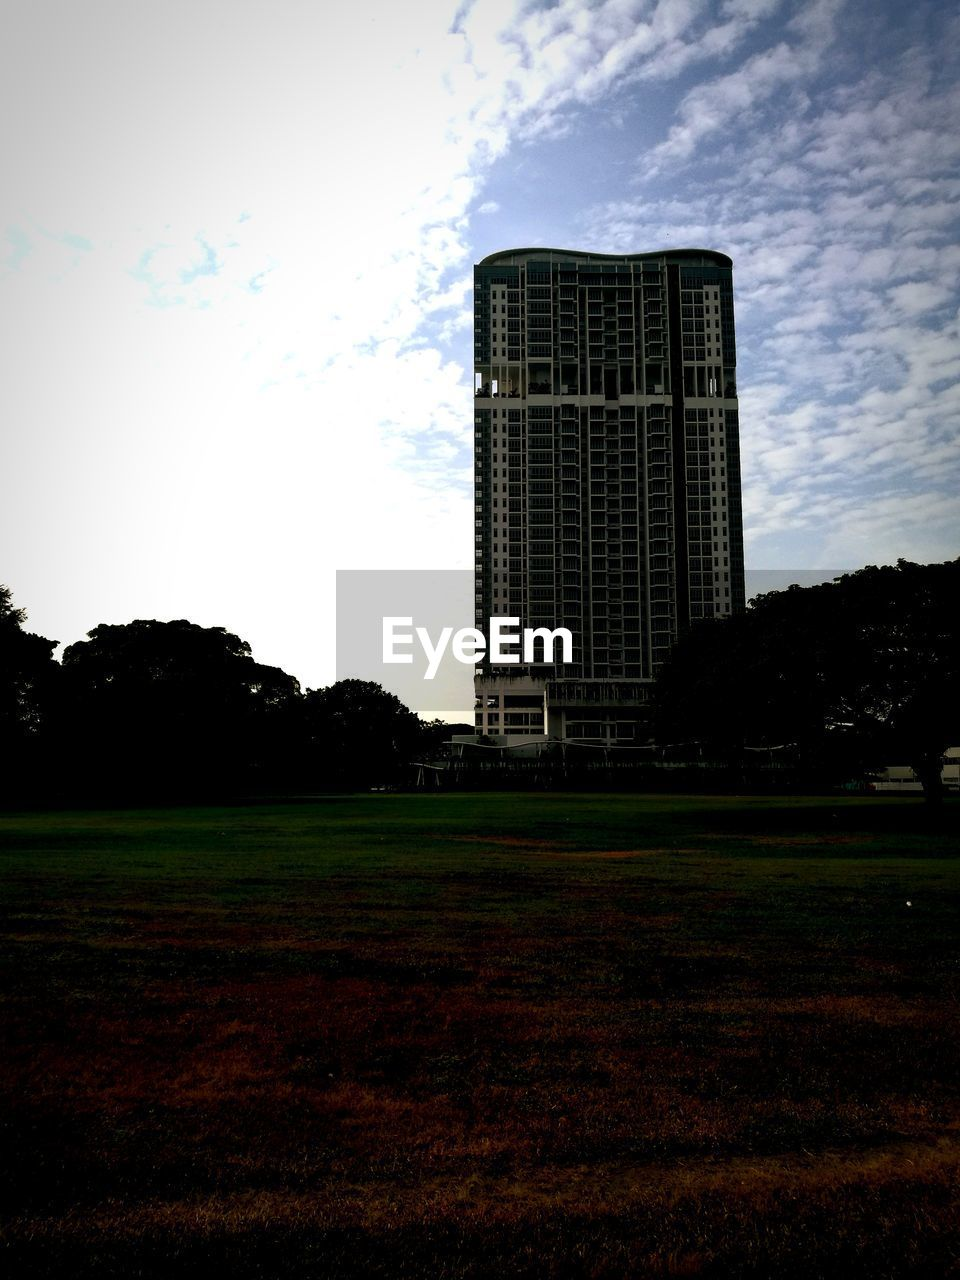 sky, plant, grass, building exterior, built structure, cloud - sky, architecture, tree, field, nature, no people, land, day, landscape, outdoors, building, sport, tall - high, growth, park, office building exterior, skyscraper